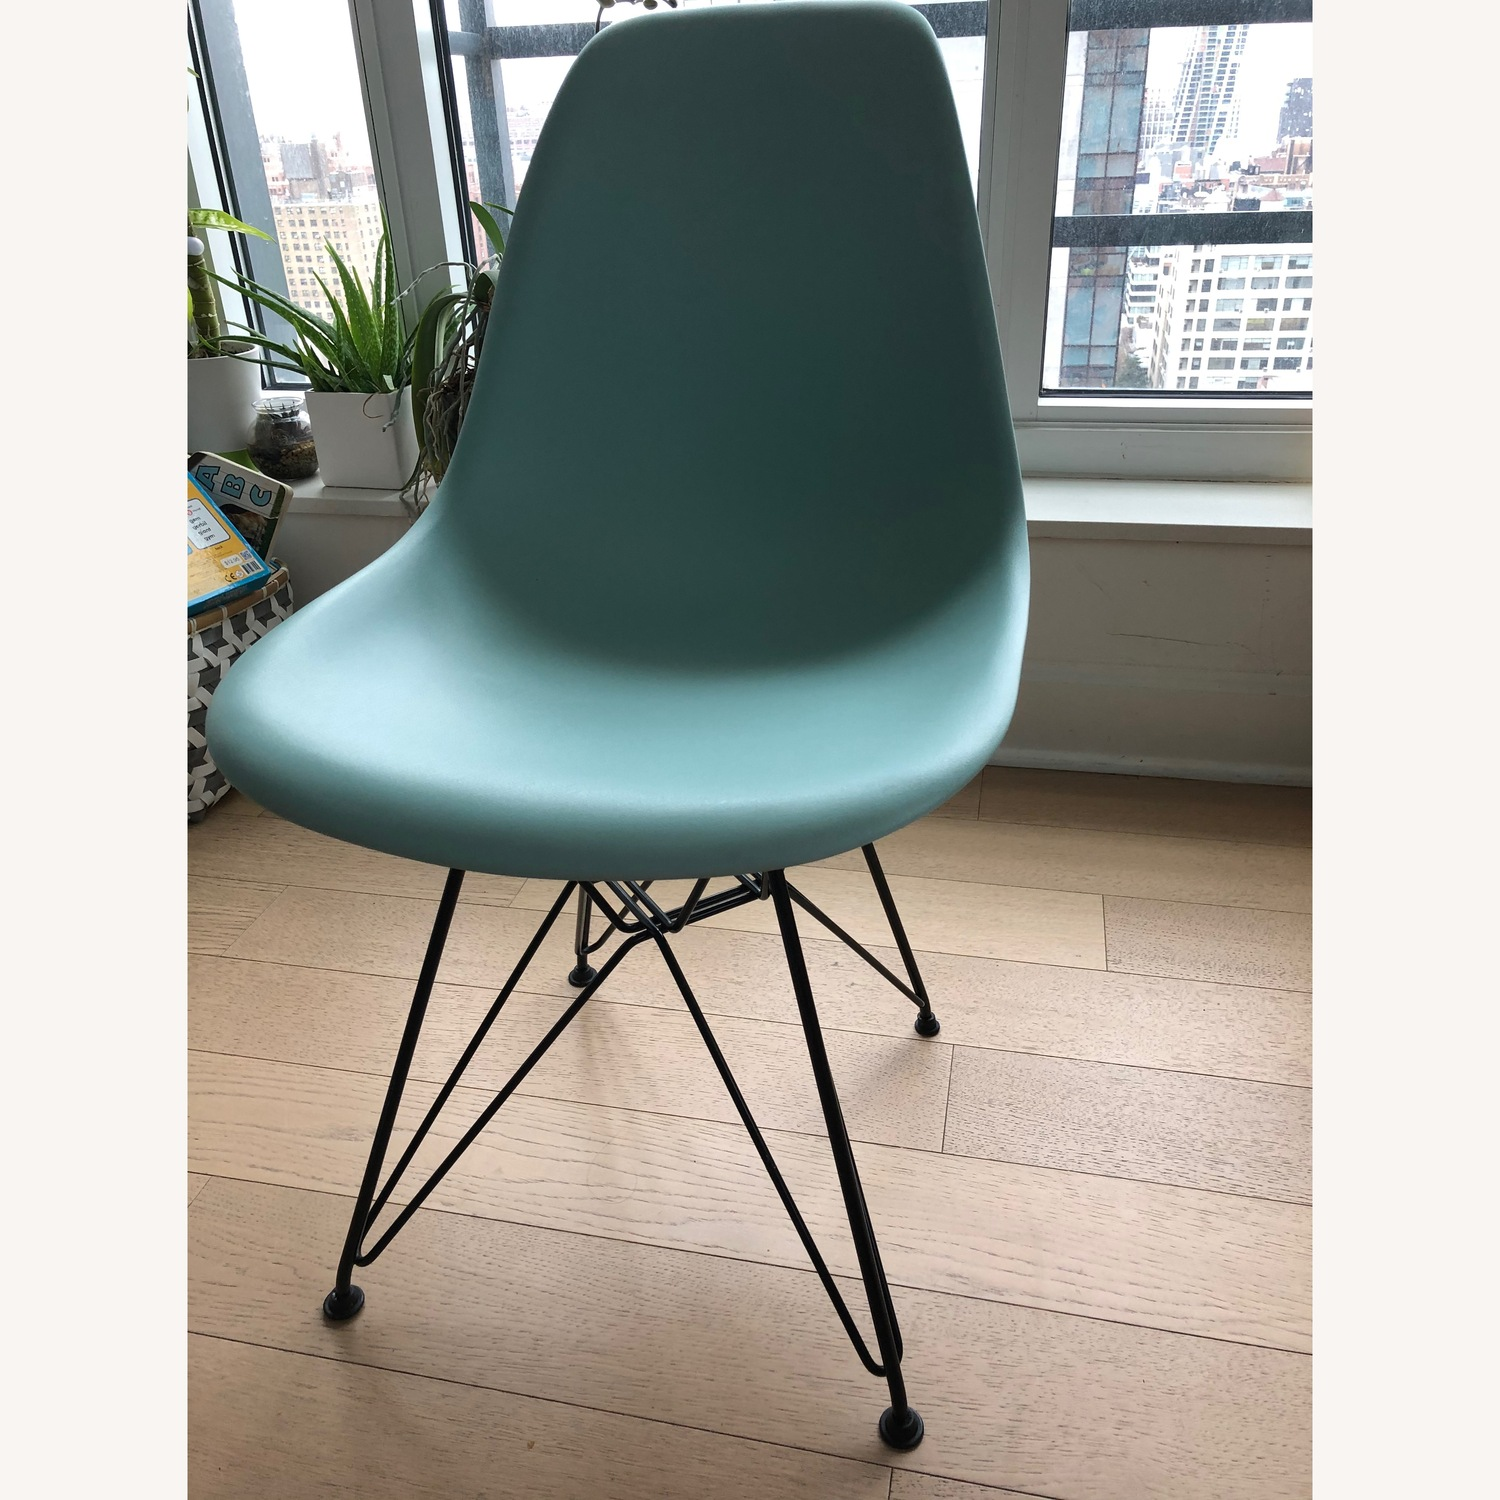 Aqua Sky Dinning Chair by Eames - image-1